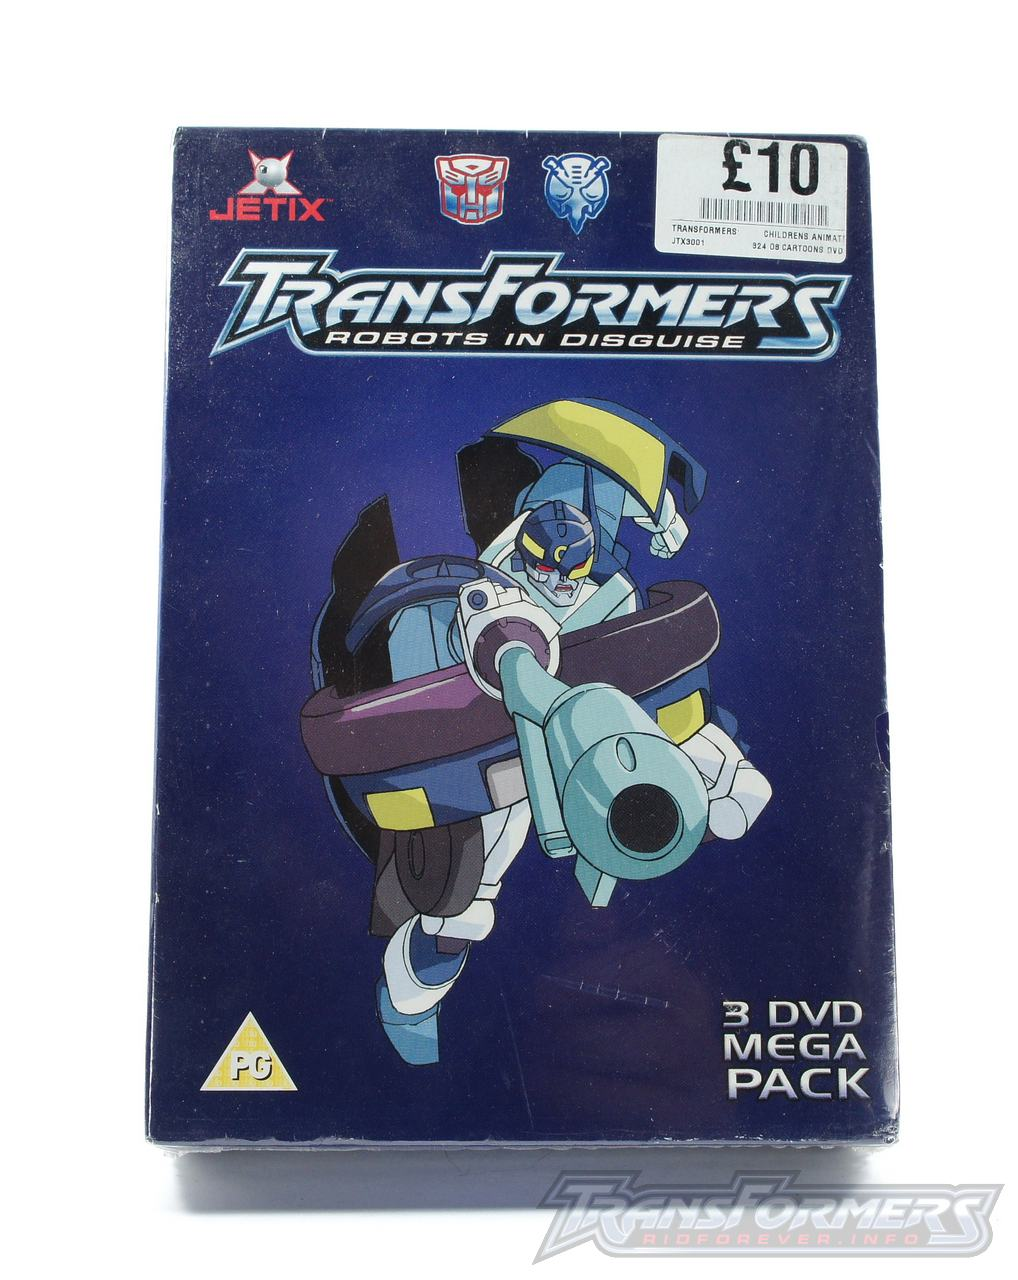 rid-uk-dvd-3dvd-box-front